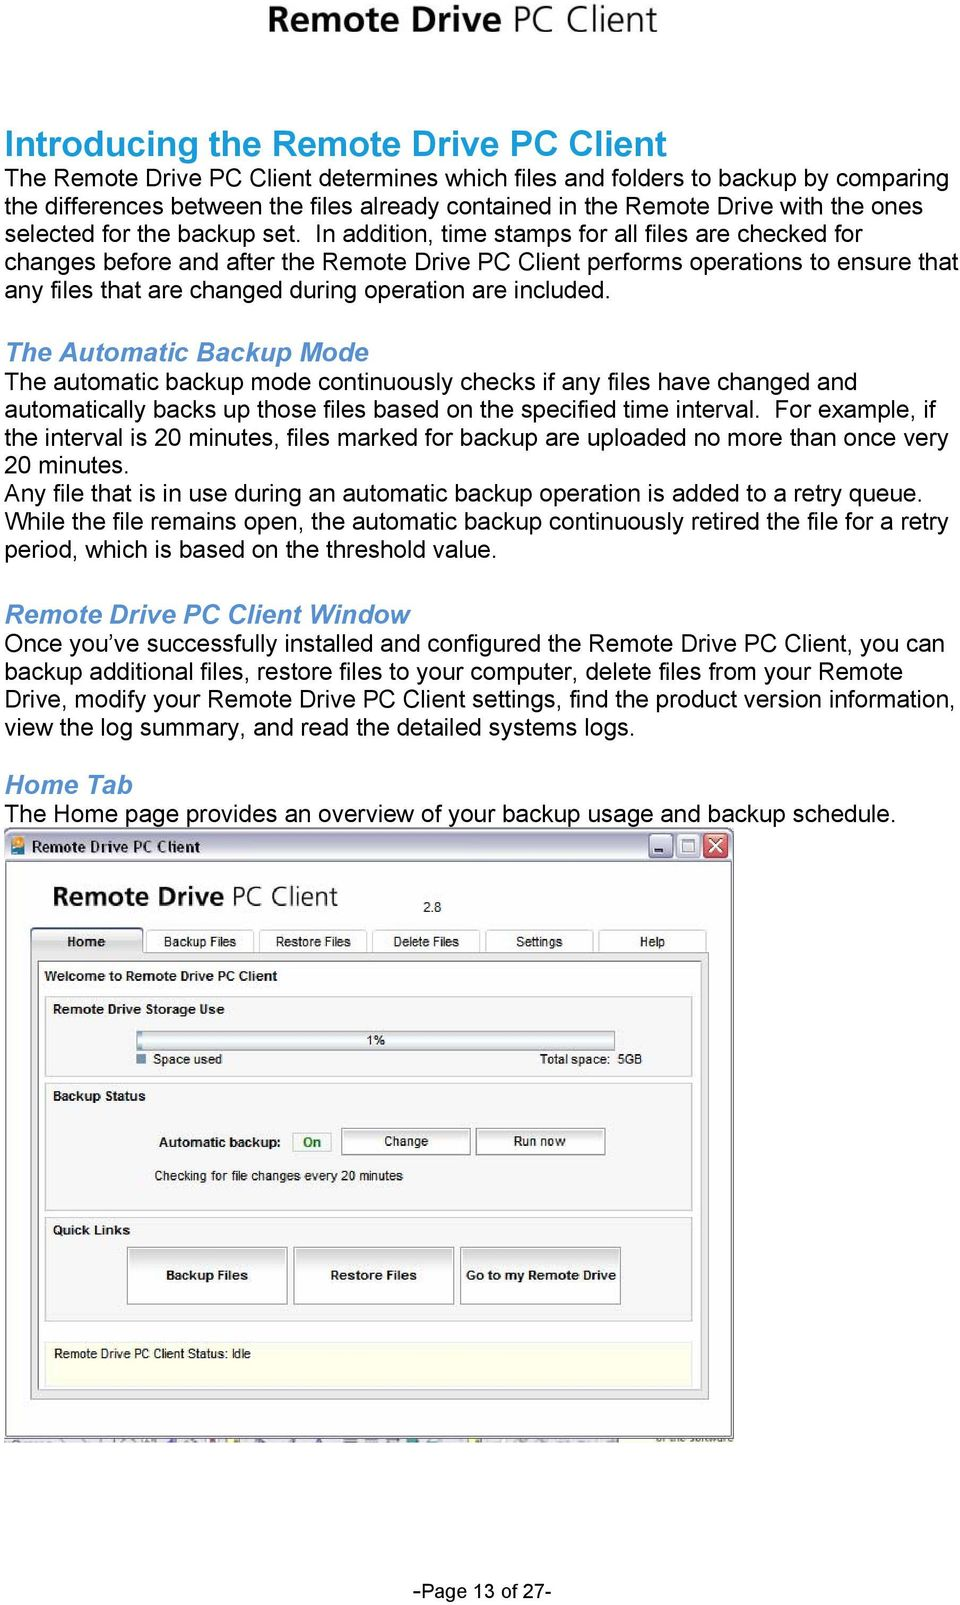 In addition, time stamps for all files are checked for changes before and after the Remote Drive PC Client performs operations to ensure that any files that are changed during operation are included.